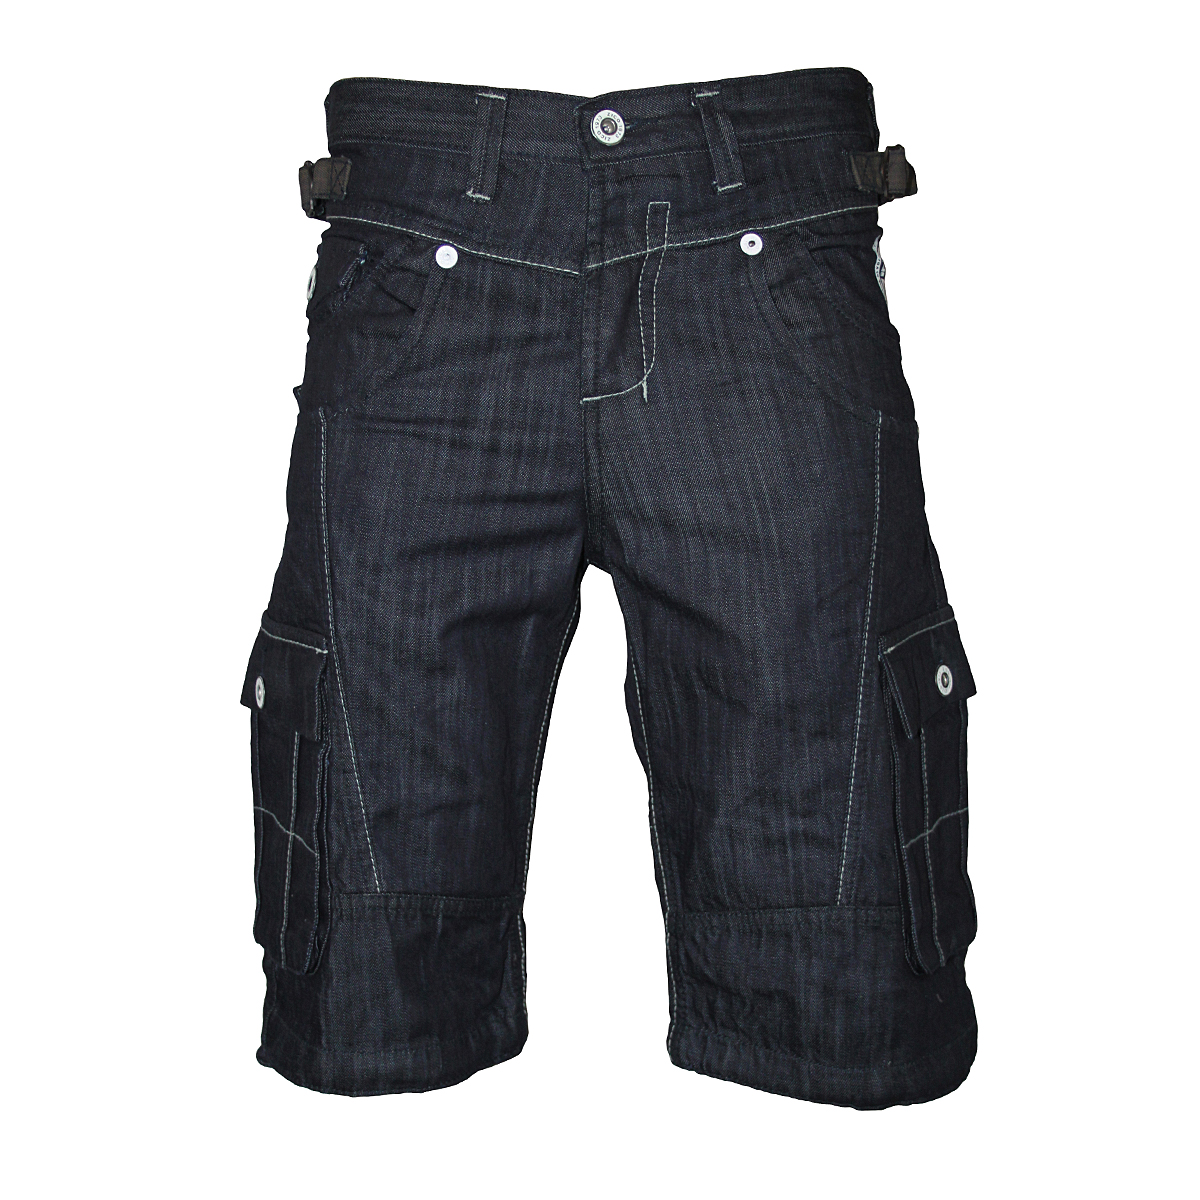 NEW MENS DARK DENIM ZICO JEANS MJT04 DESIGNER KNEE LENGTH SHORTS ...